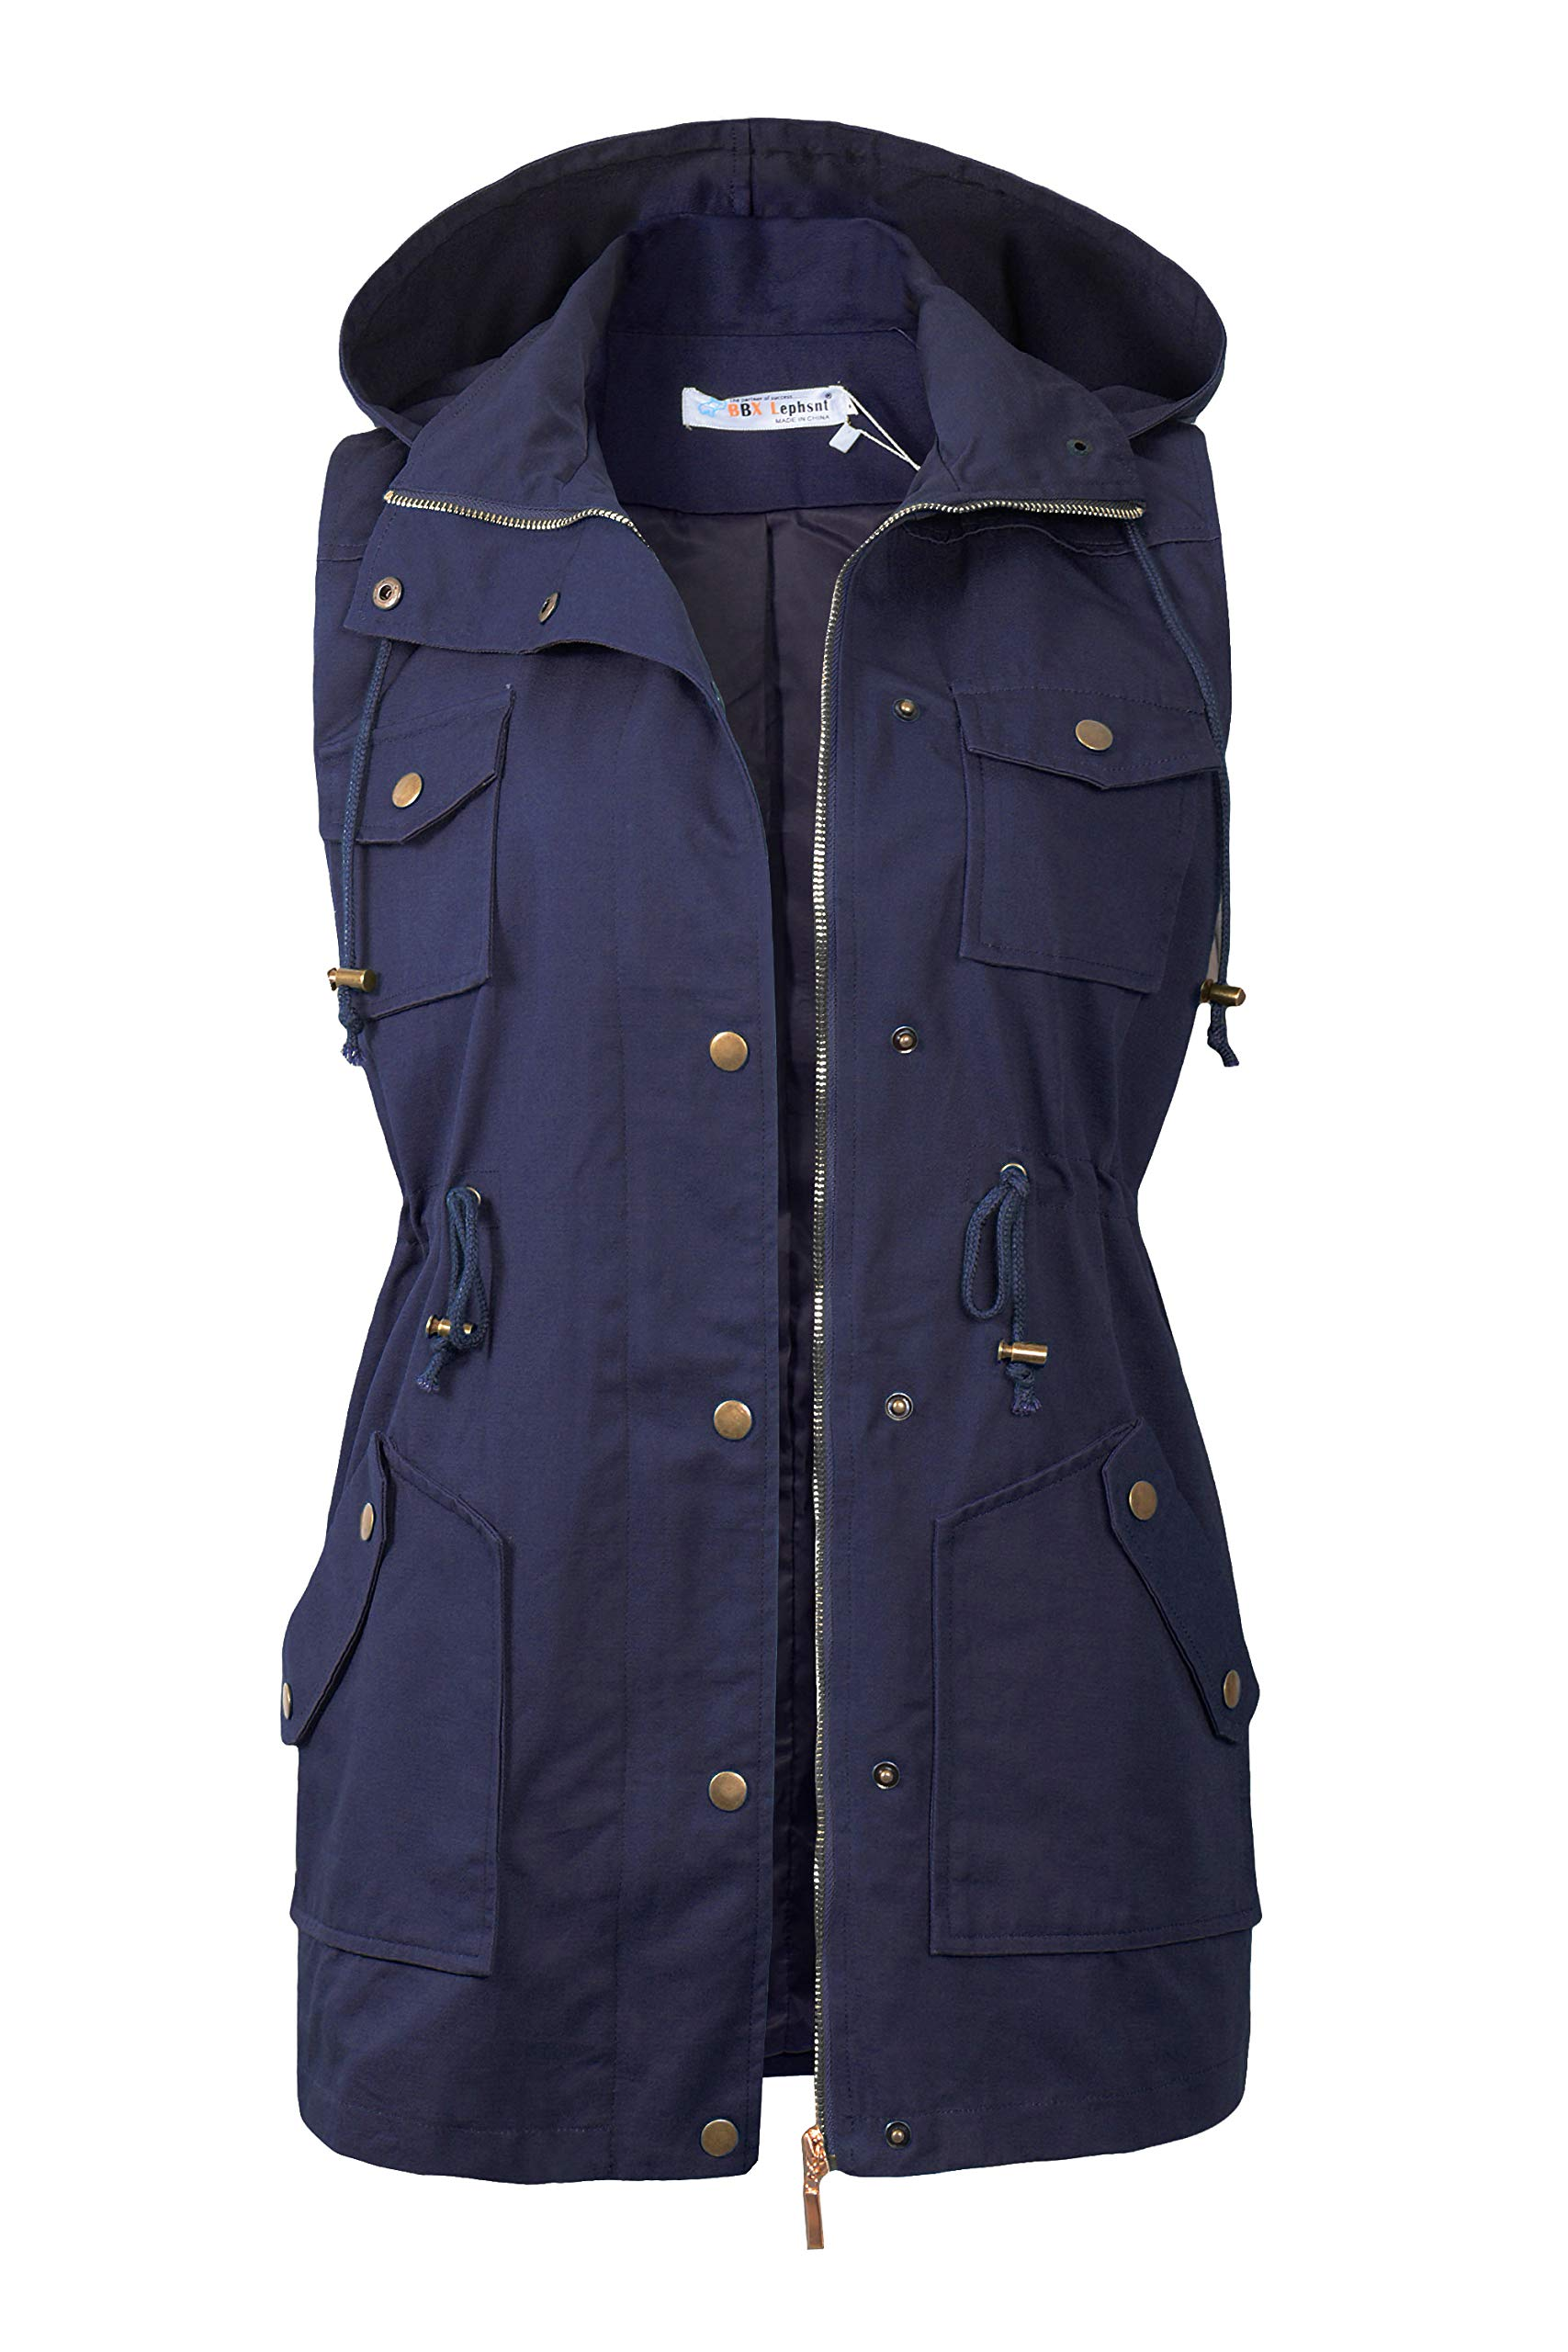 BBX Lephsnt Womens Sleeveless Military Anorak Drawstring Jacket Vest Navy Blue by BBX Lephsnt